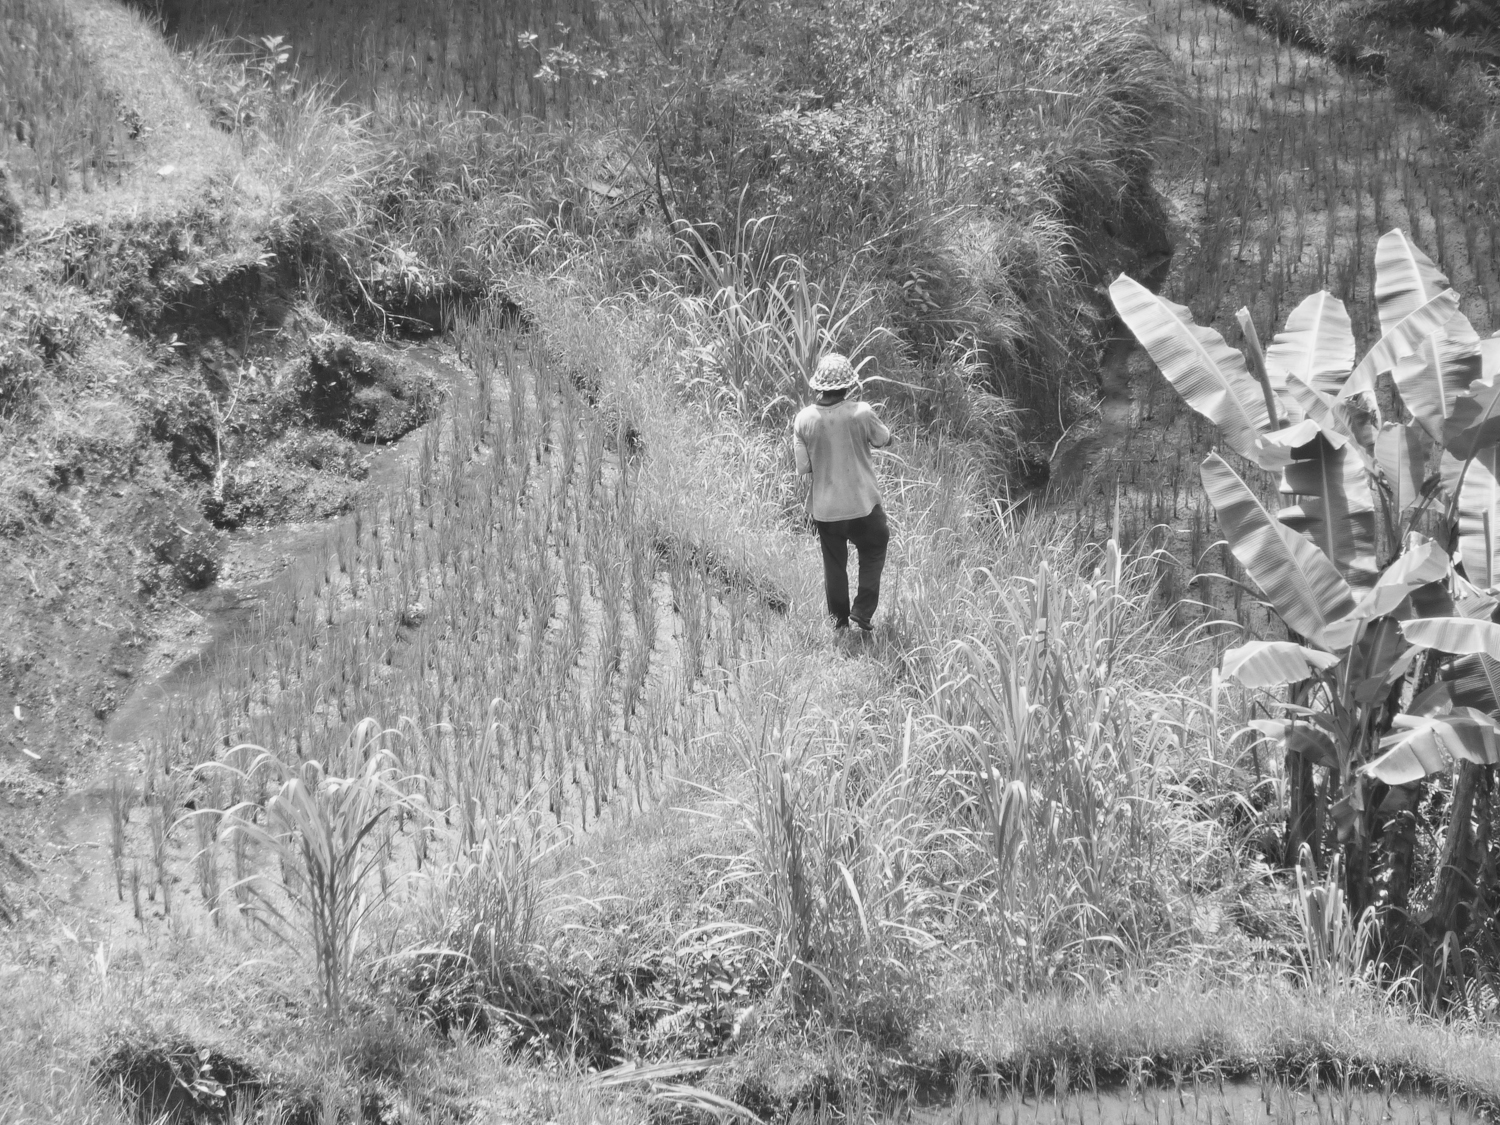 Landscape photograph showing a rice padi worker in his field in the distance